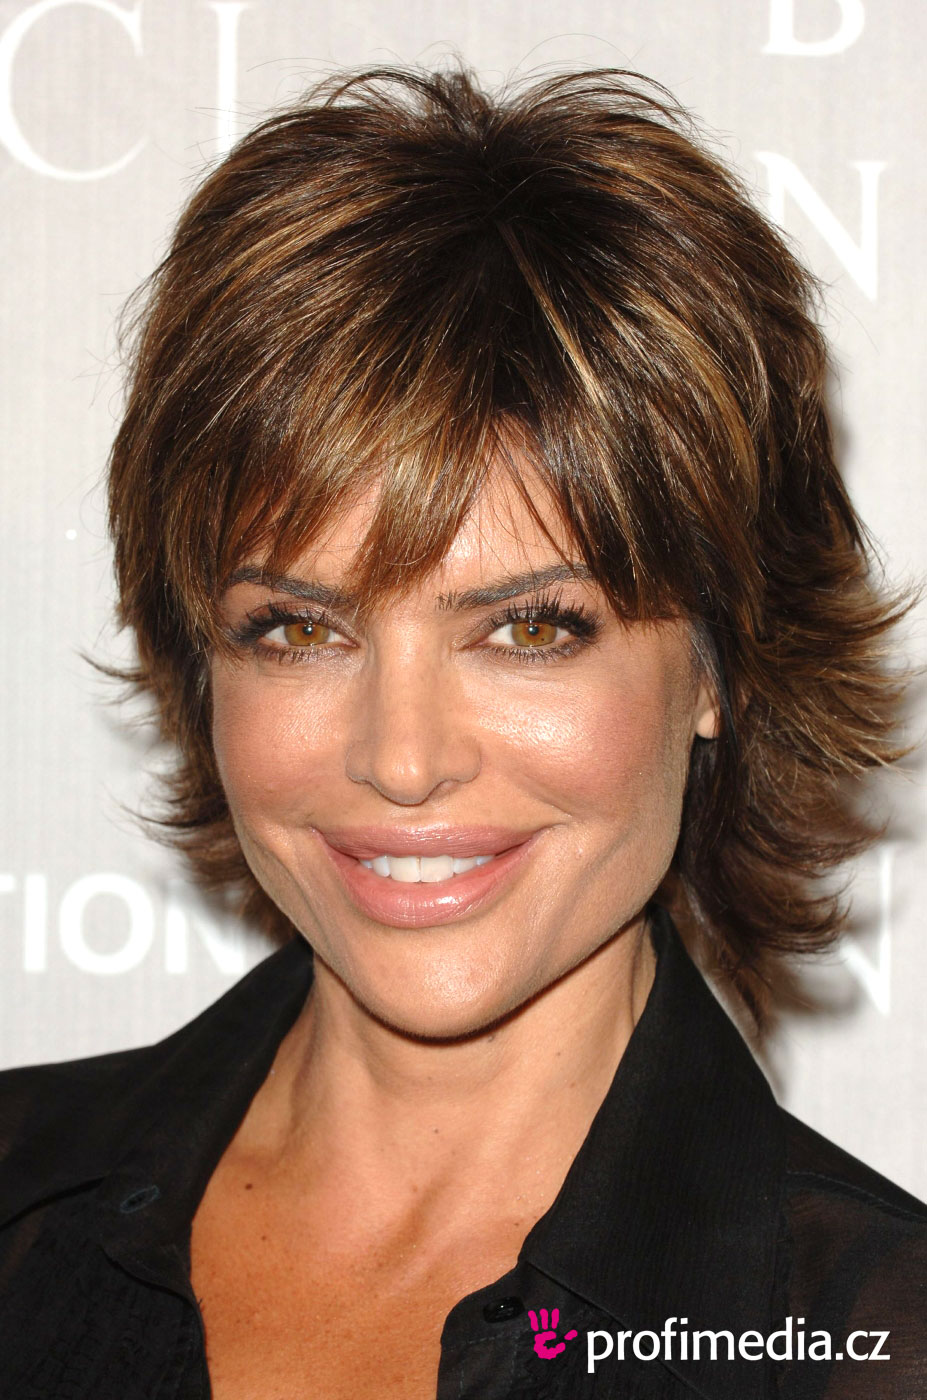 Lisa Rinna - Wallpaper